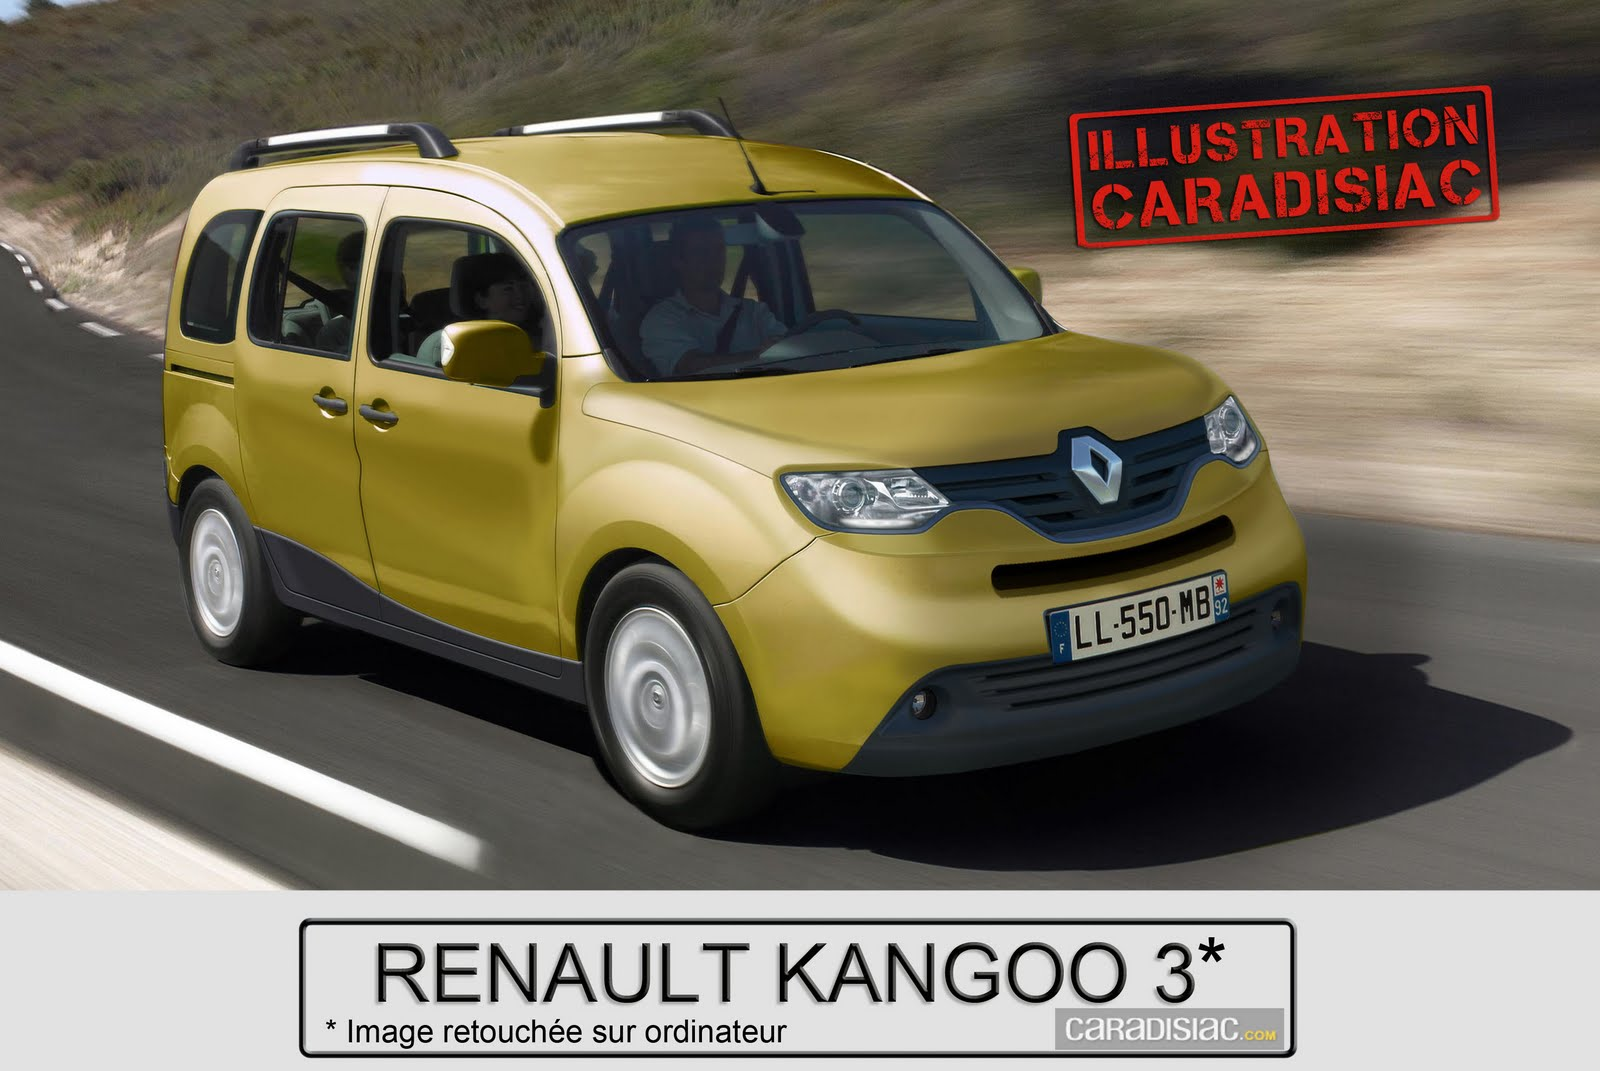 hight resolution of  renault kangoo 2015 greek renault news